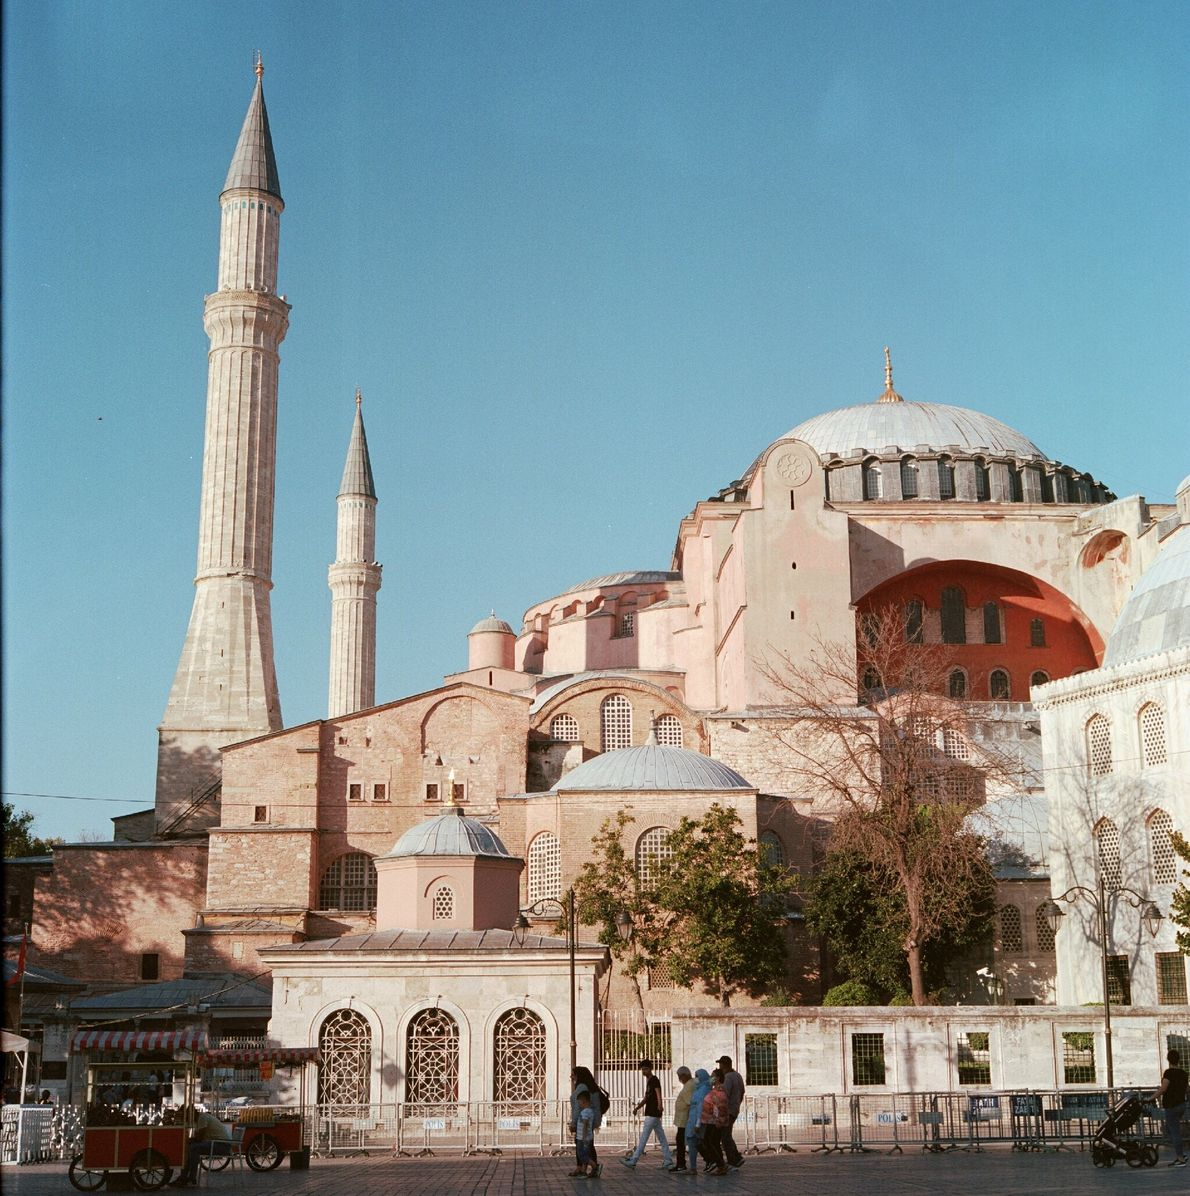 The Hagia Sophia, Istanbul's most famous Byzantine-era monument, was re-converted into a functioning mosque this year ...